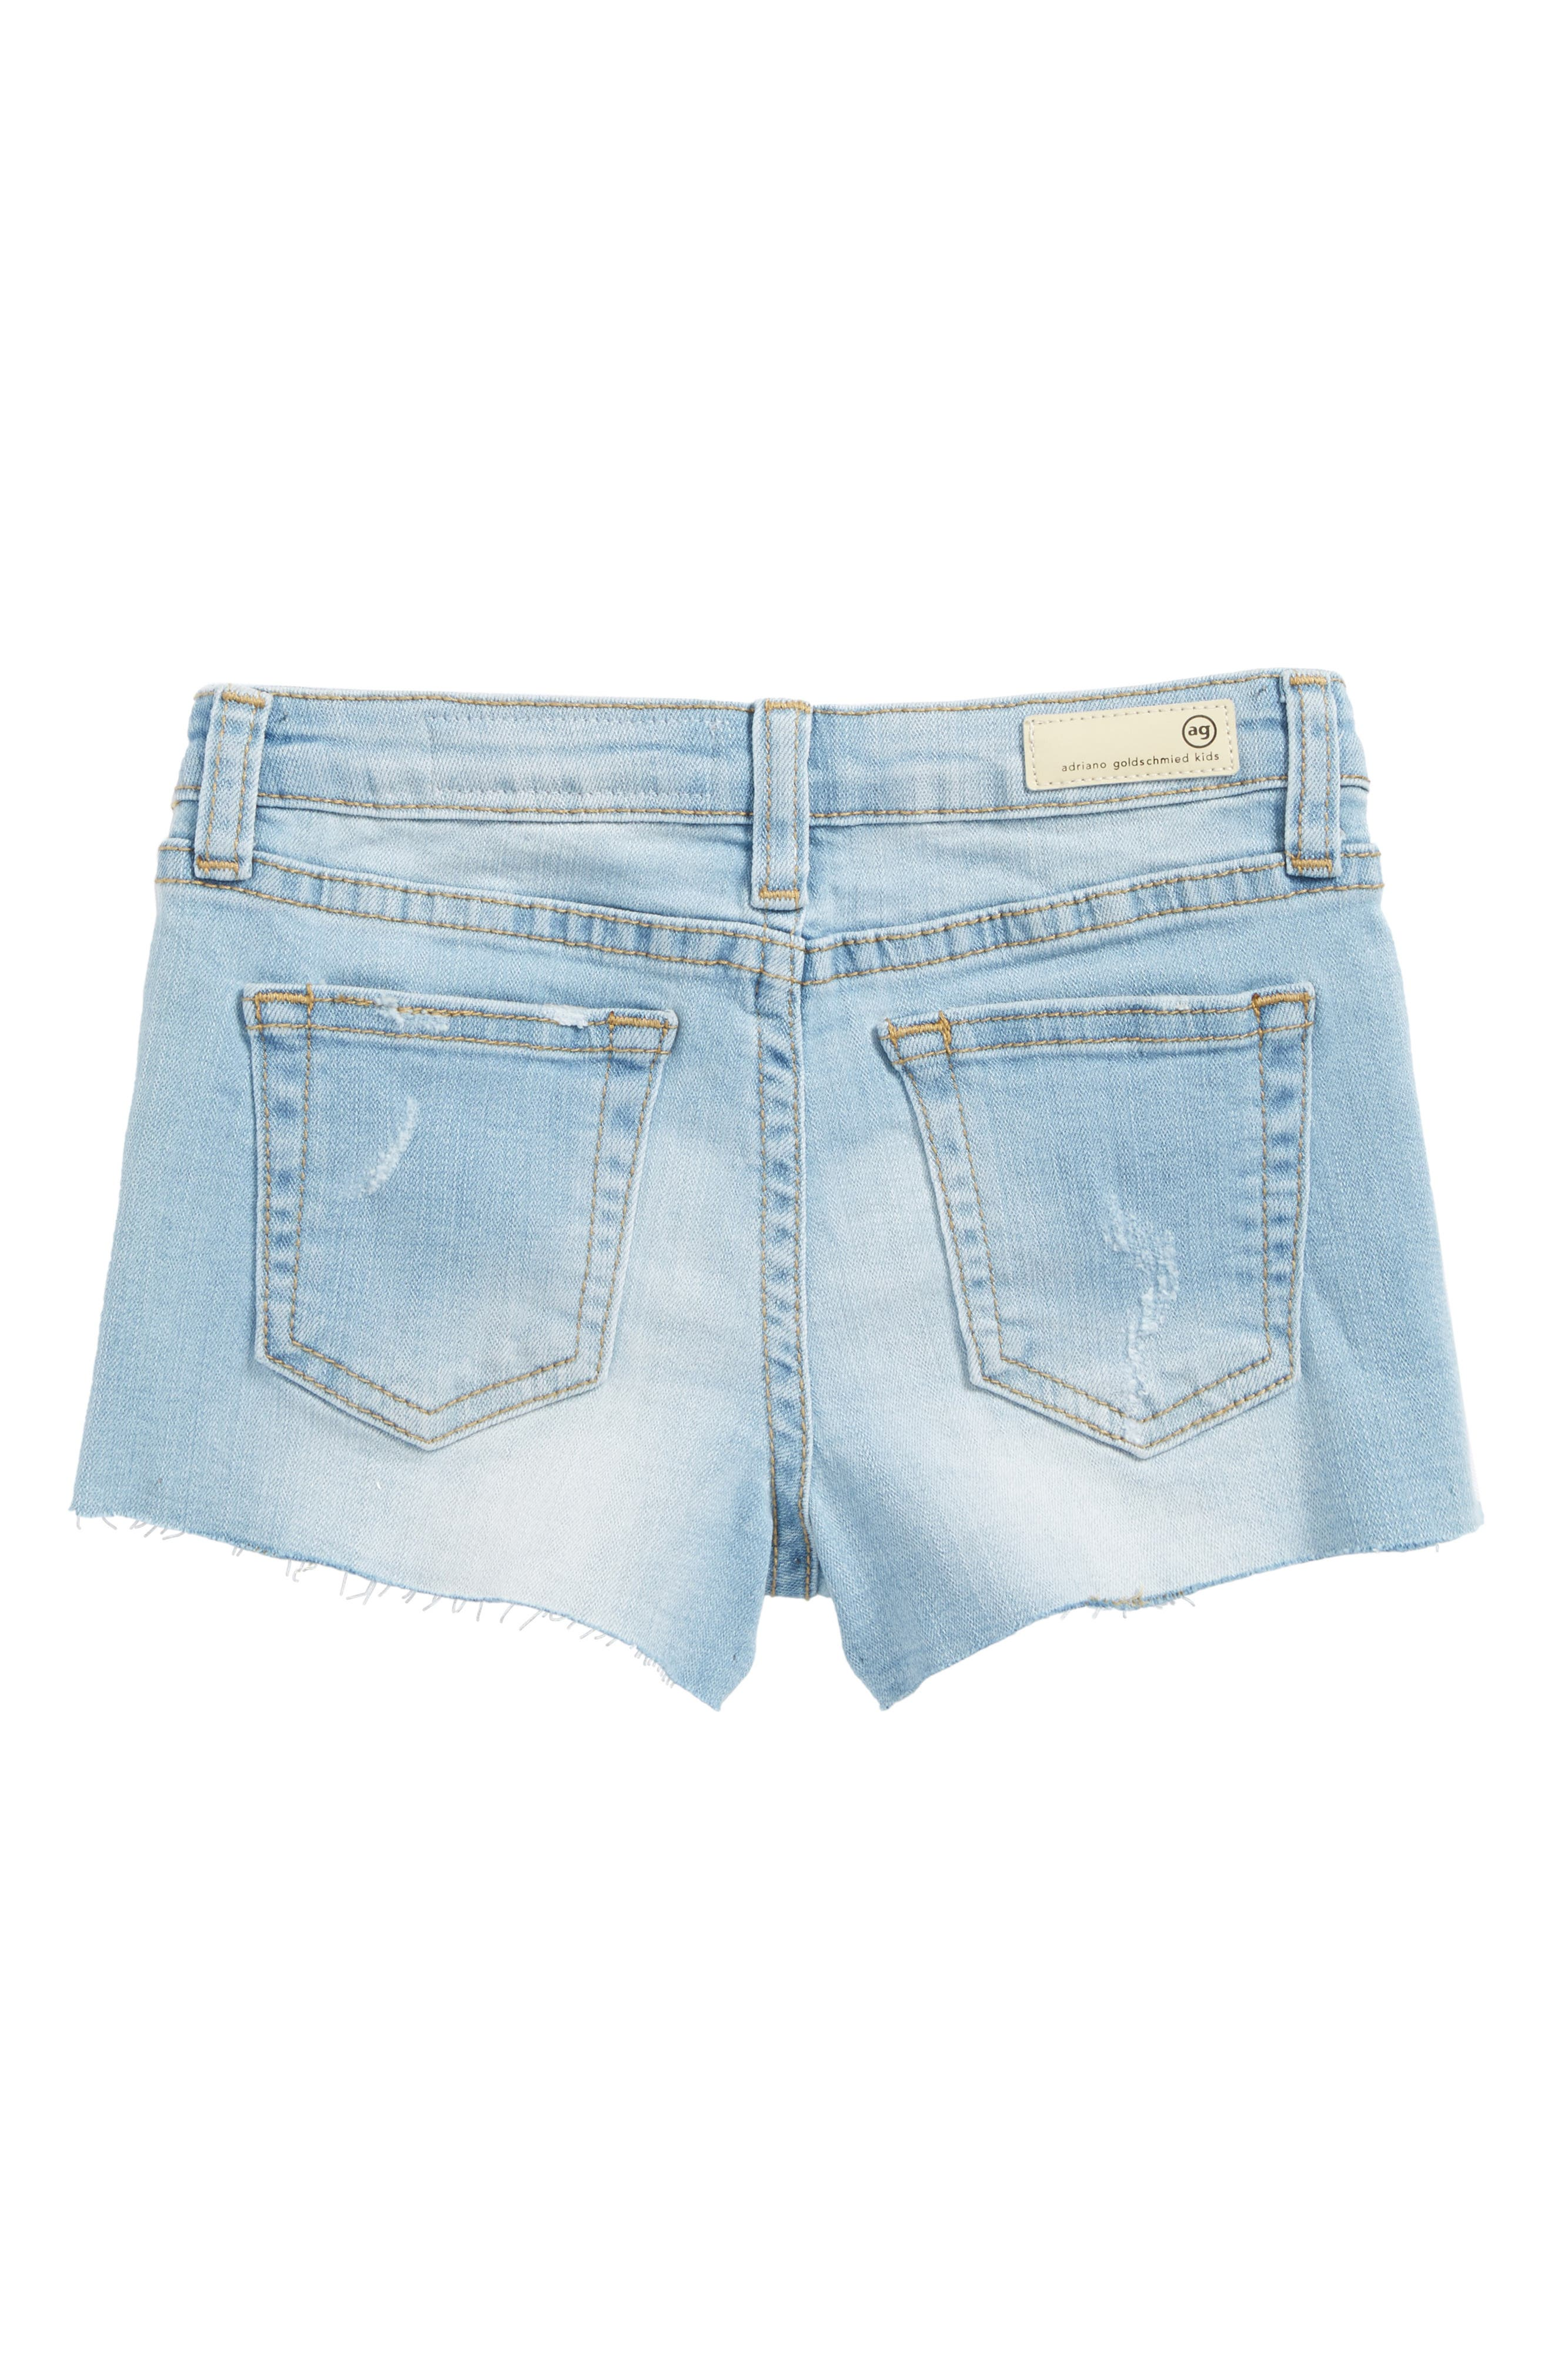 Alternate Image 2  - ag adriano goldschmied kids The Shelby Cutoff Shorts (Toddler Girls & Little Girls)